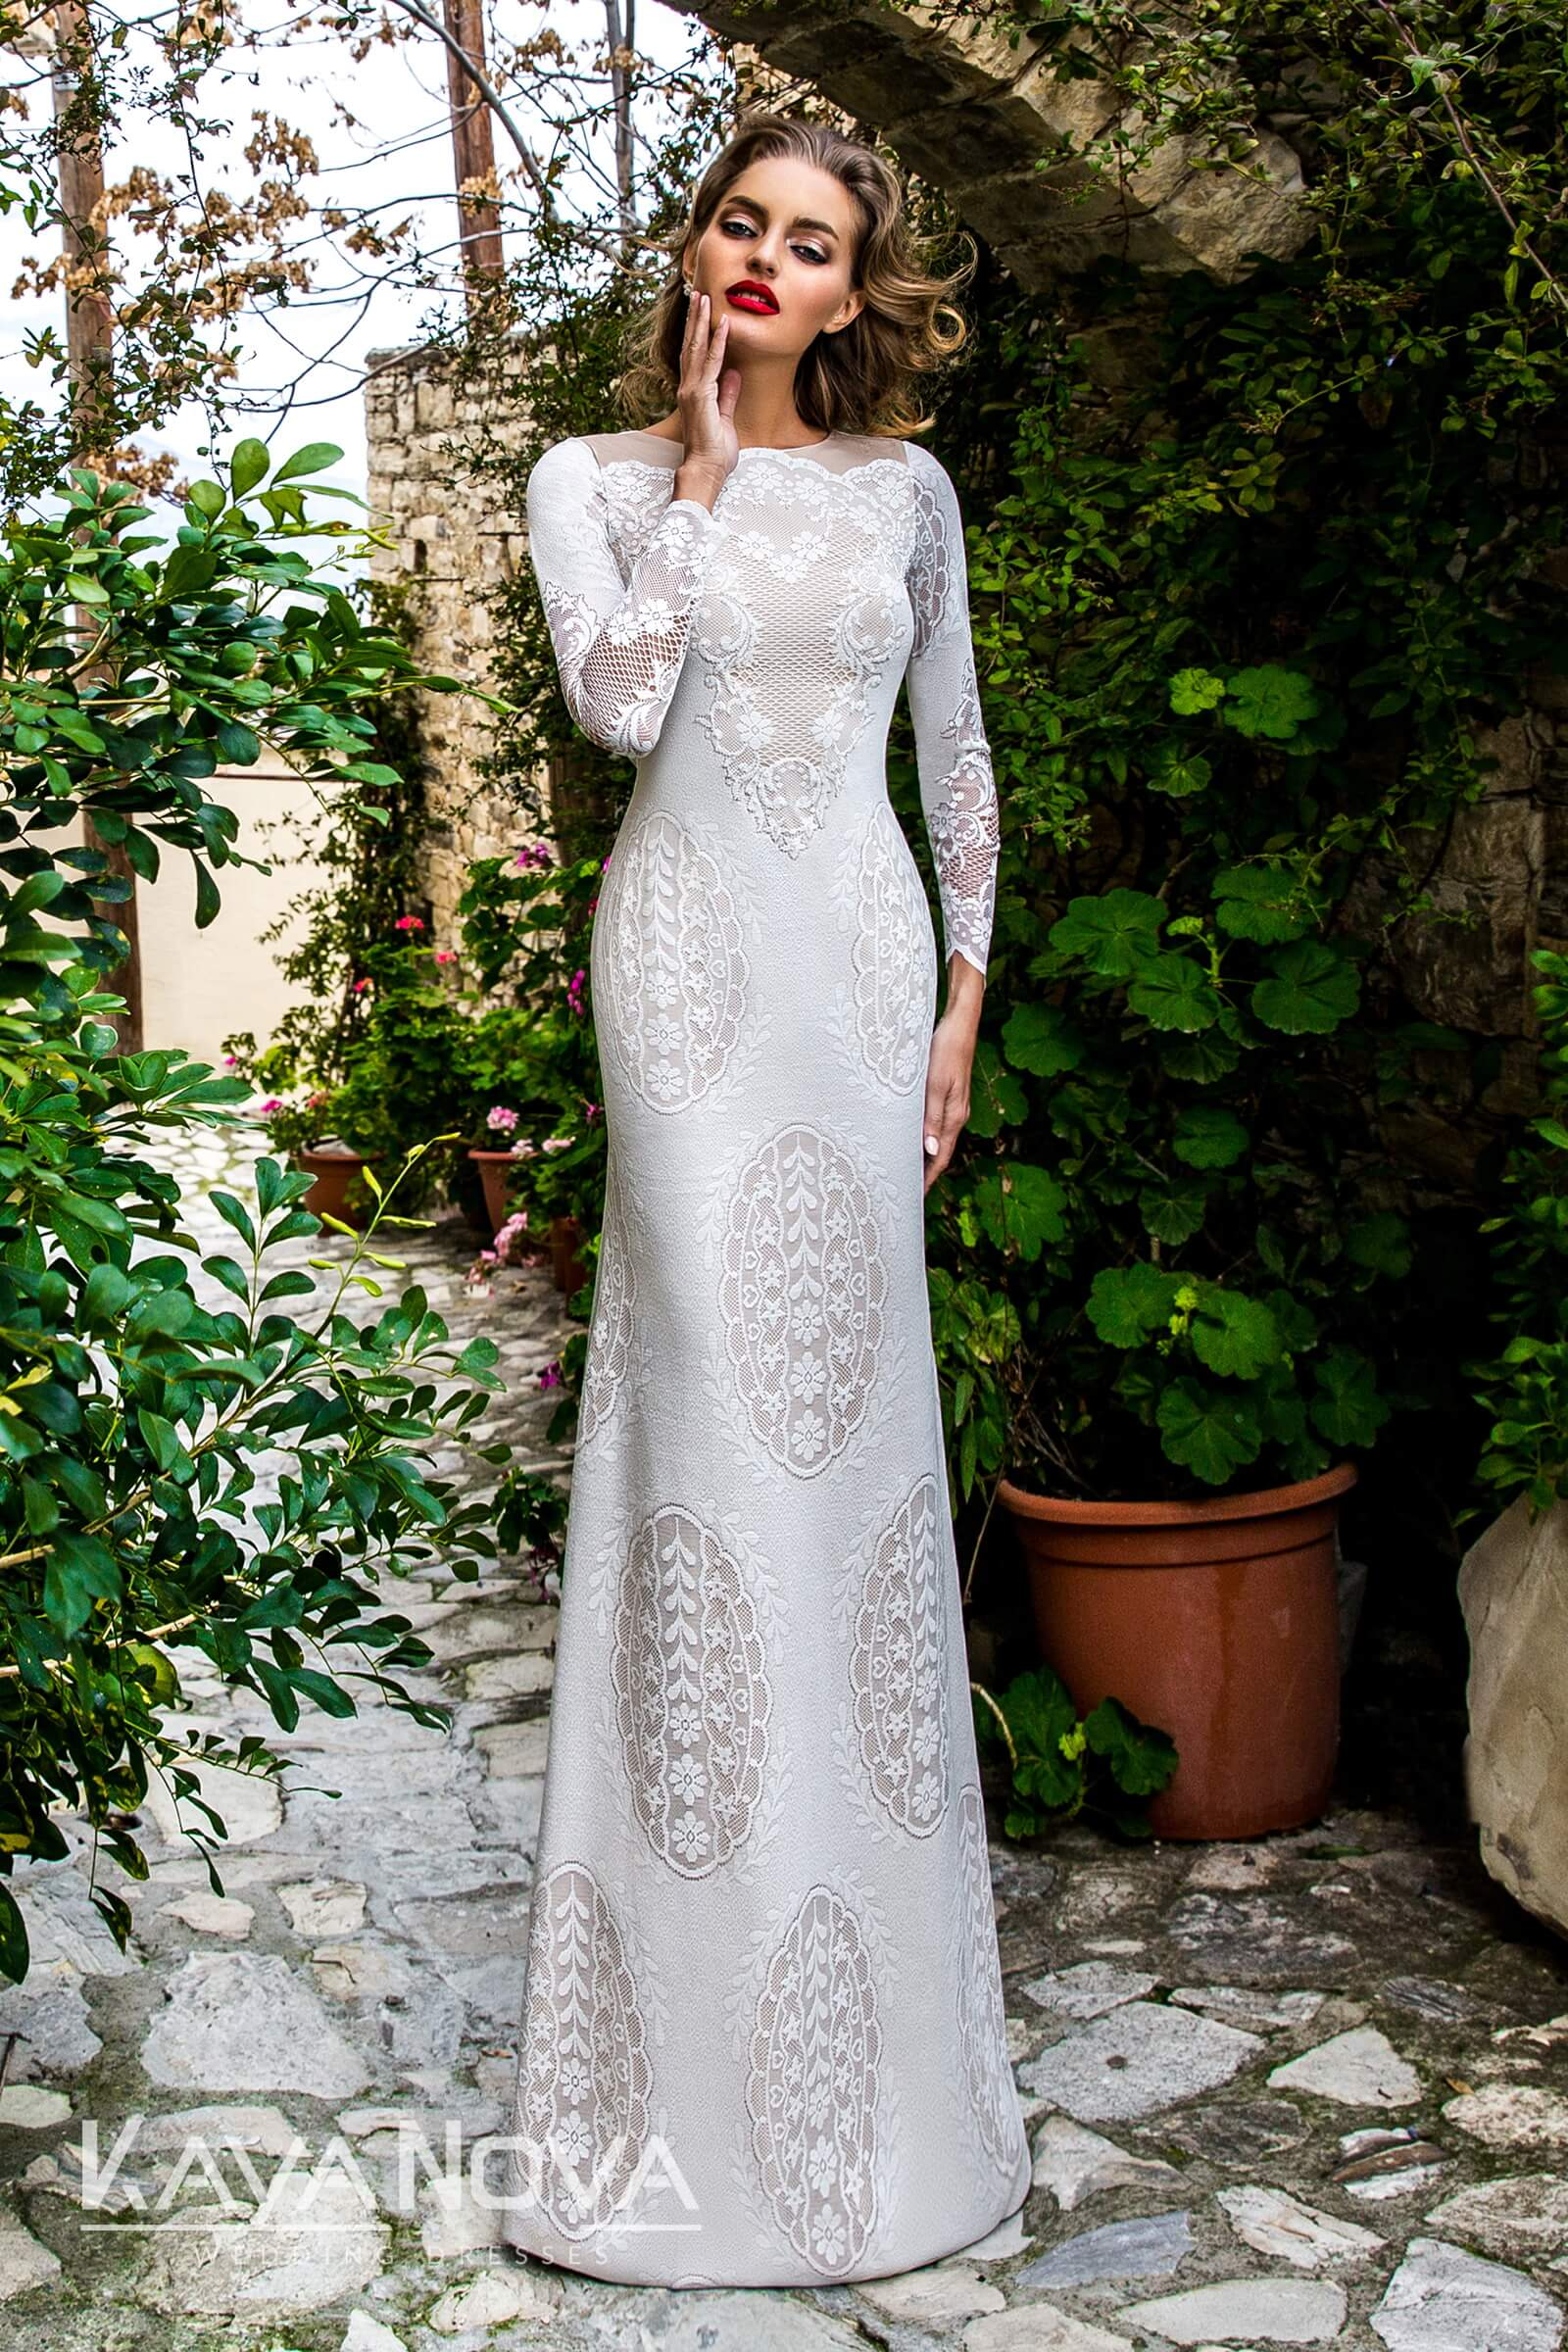 https://kayawedding.com/images/stories/virtuemart/product/Bellissima 1_19.jpg